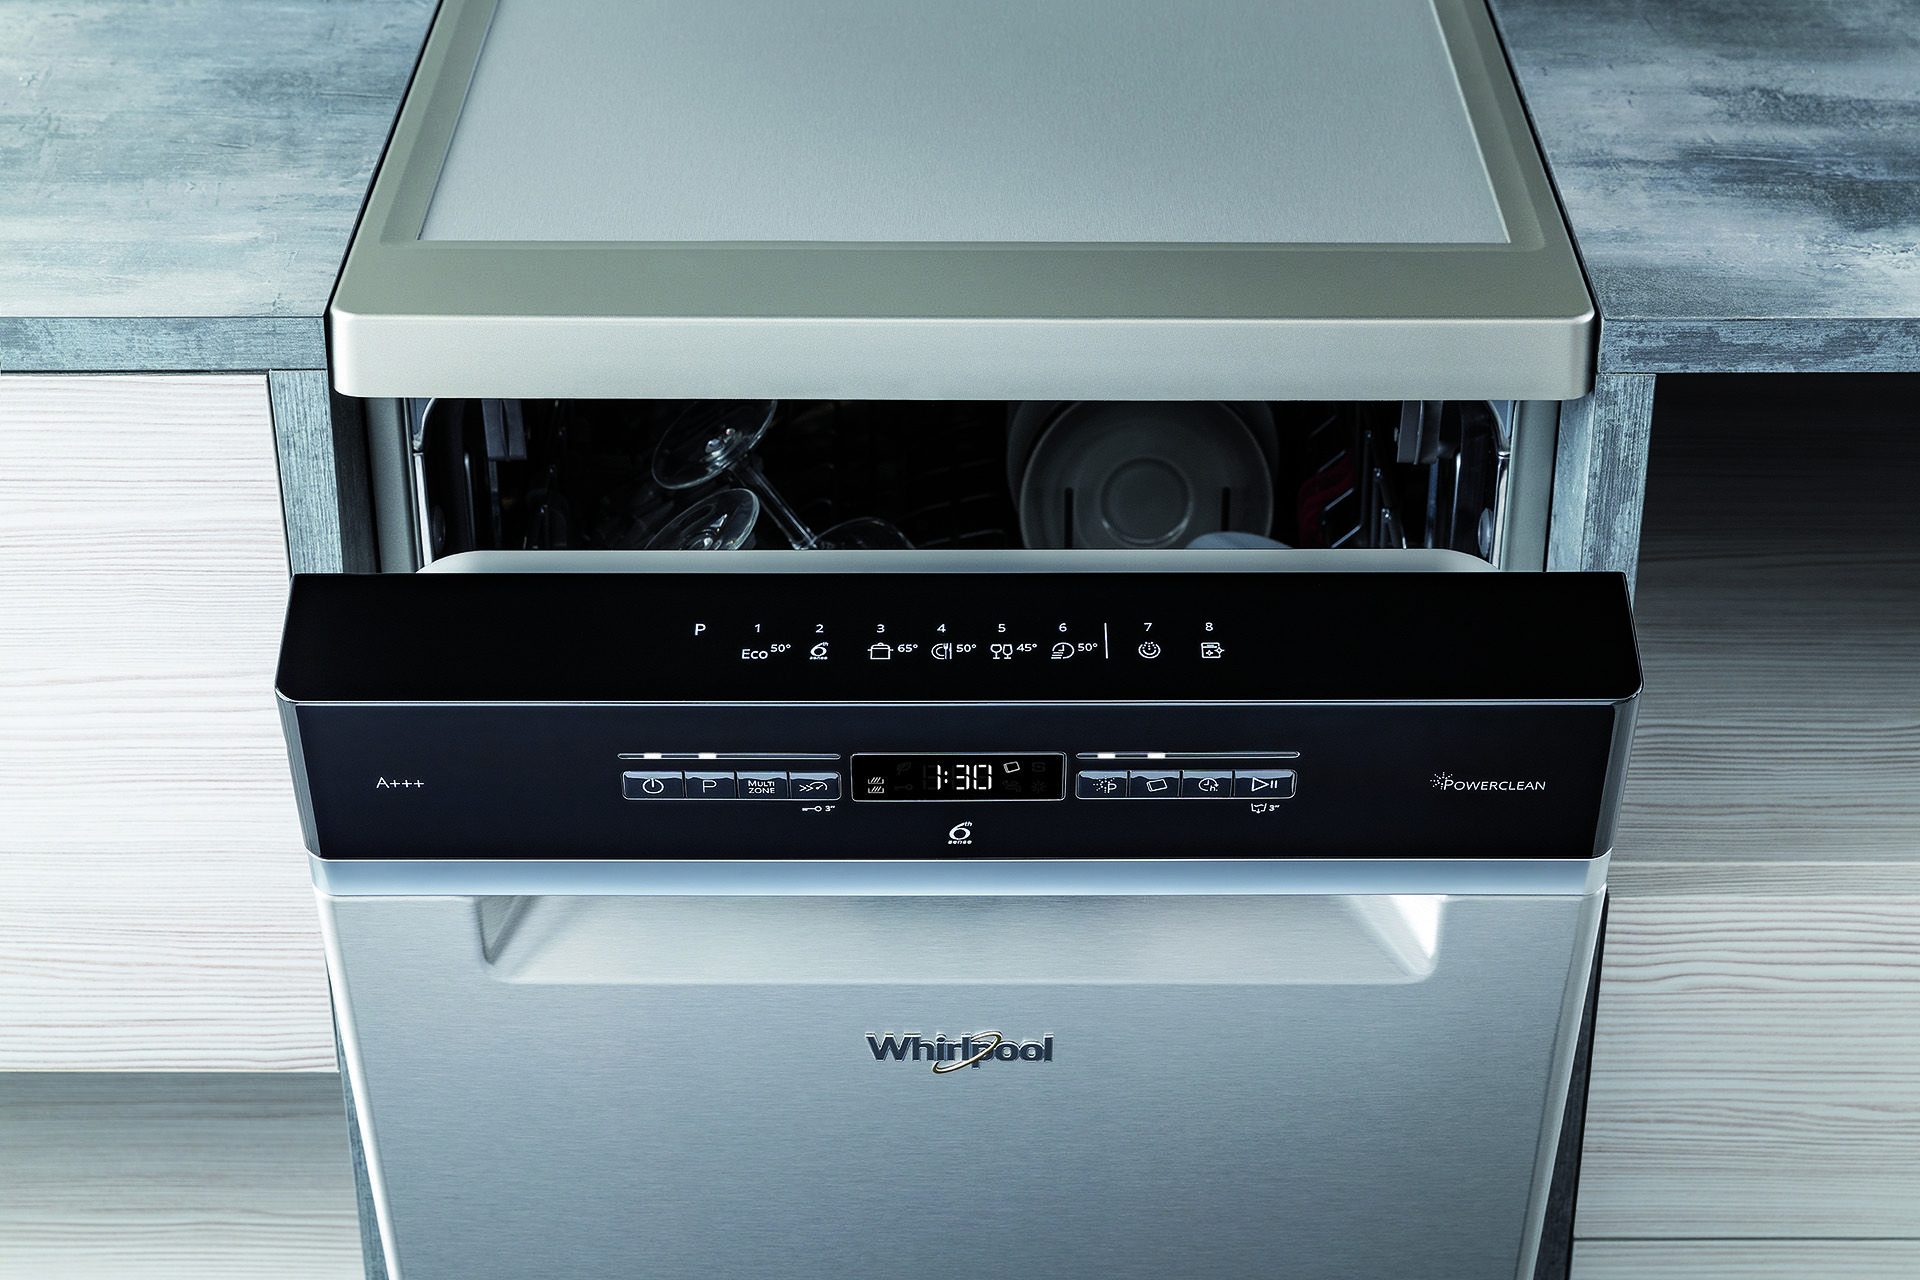 Whirlpool S New Slim Size Dishwasher Delivers All The Performance